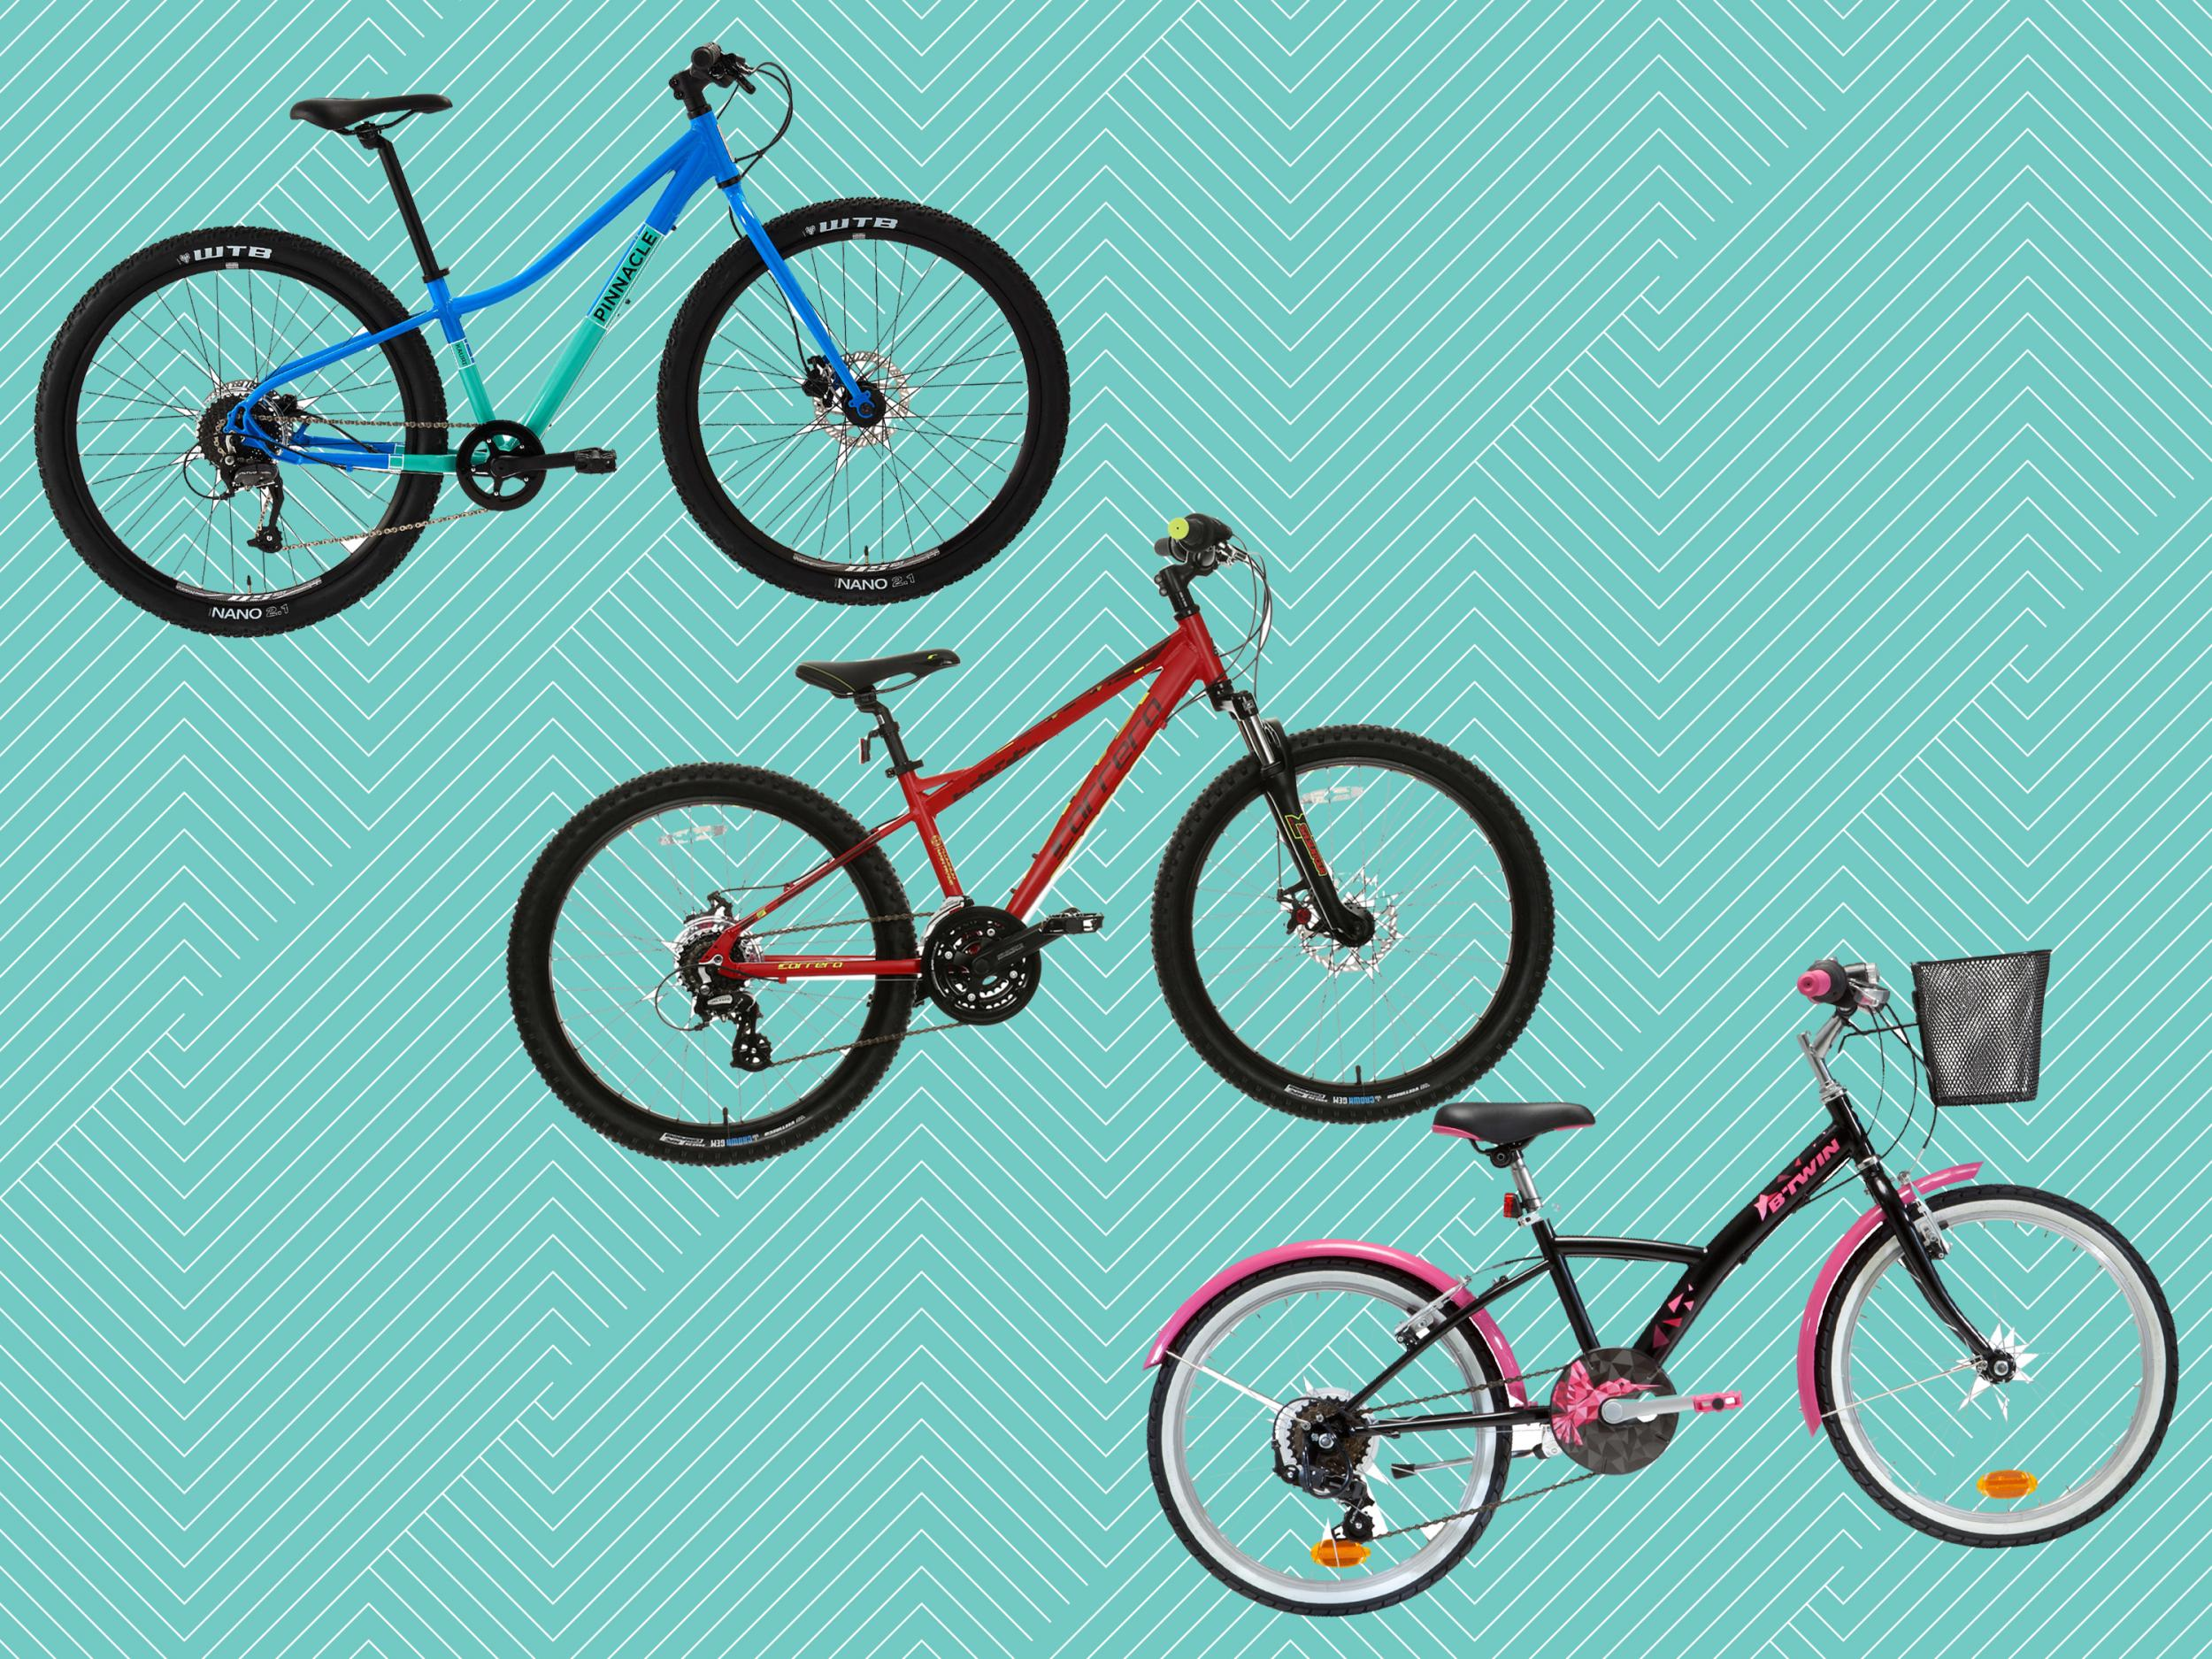 Best kids bike for all ages and abilities